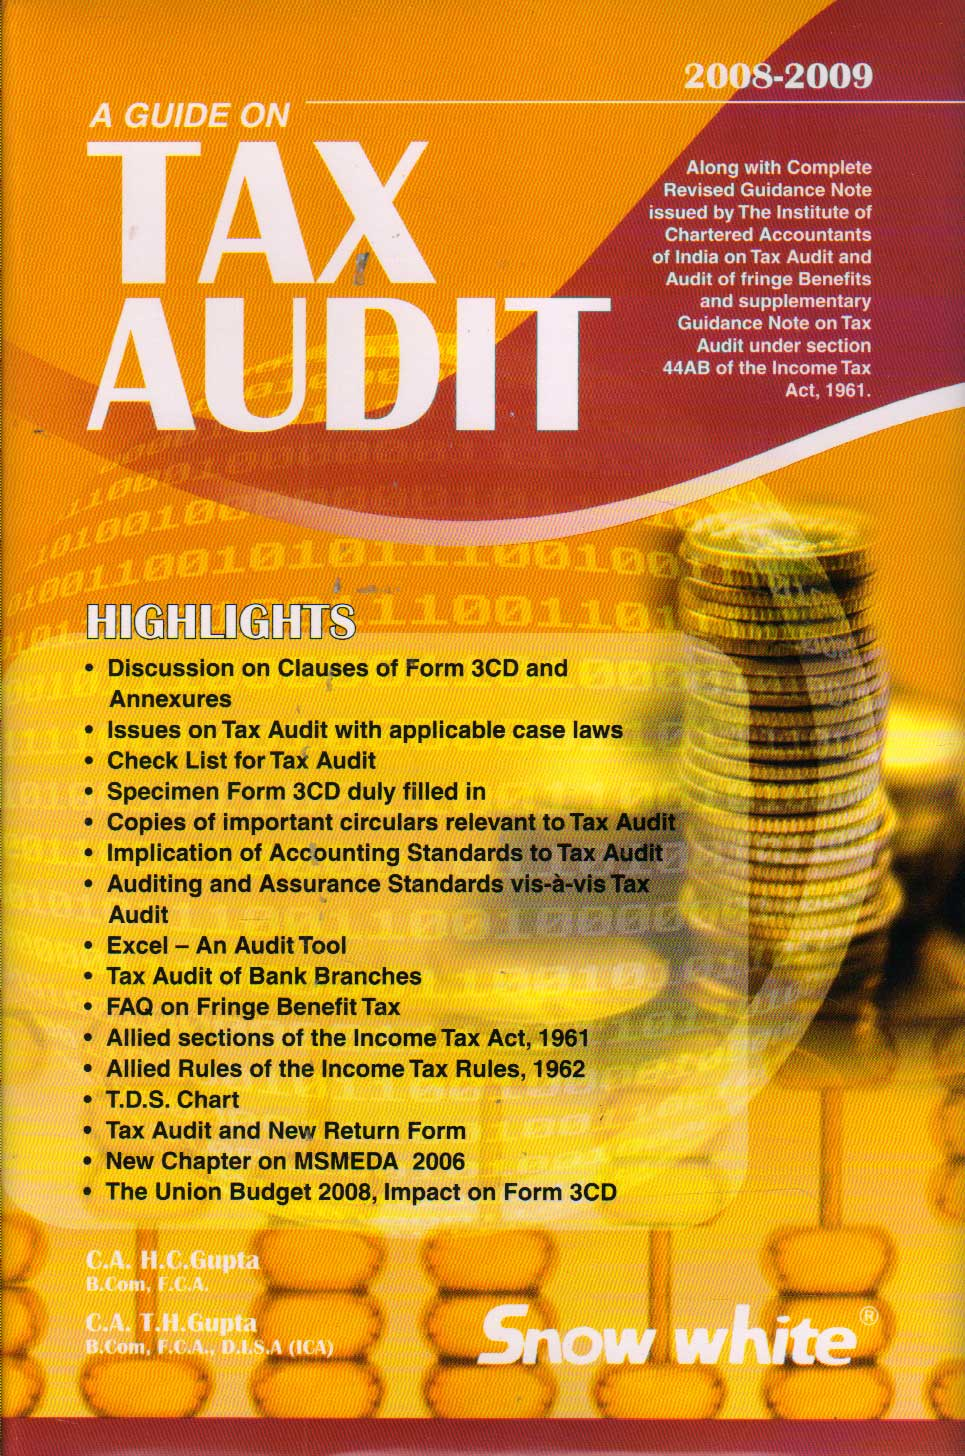 A Guide on Tax Audit 2008-09